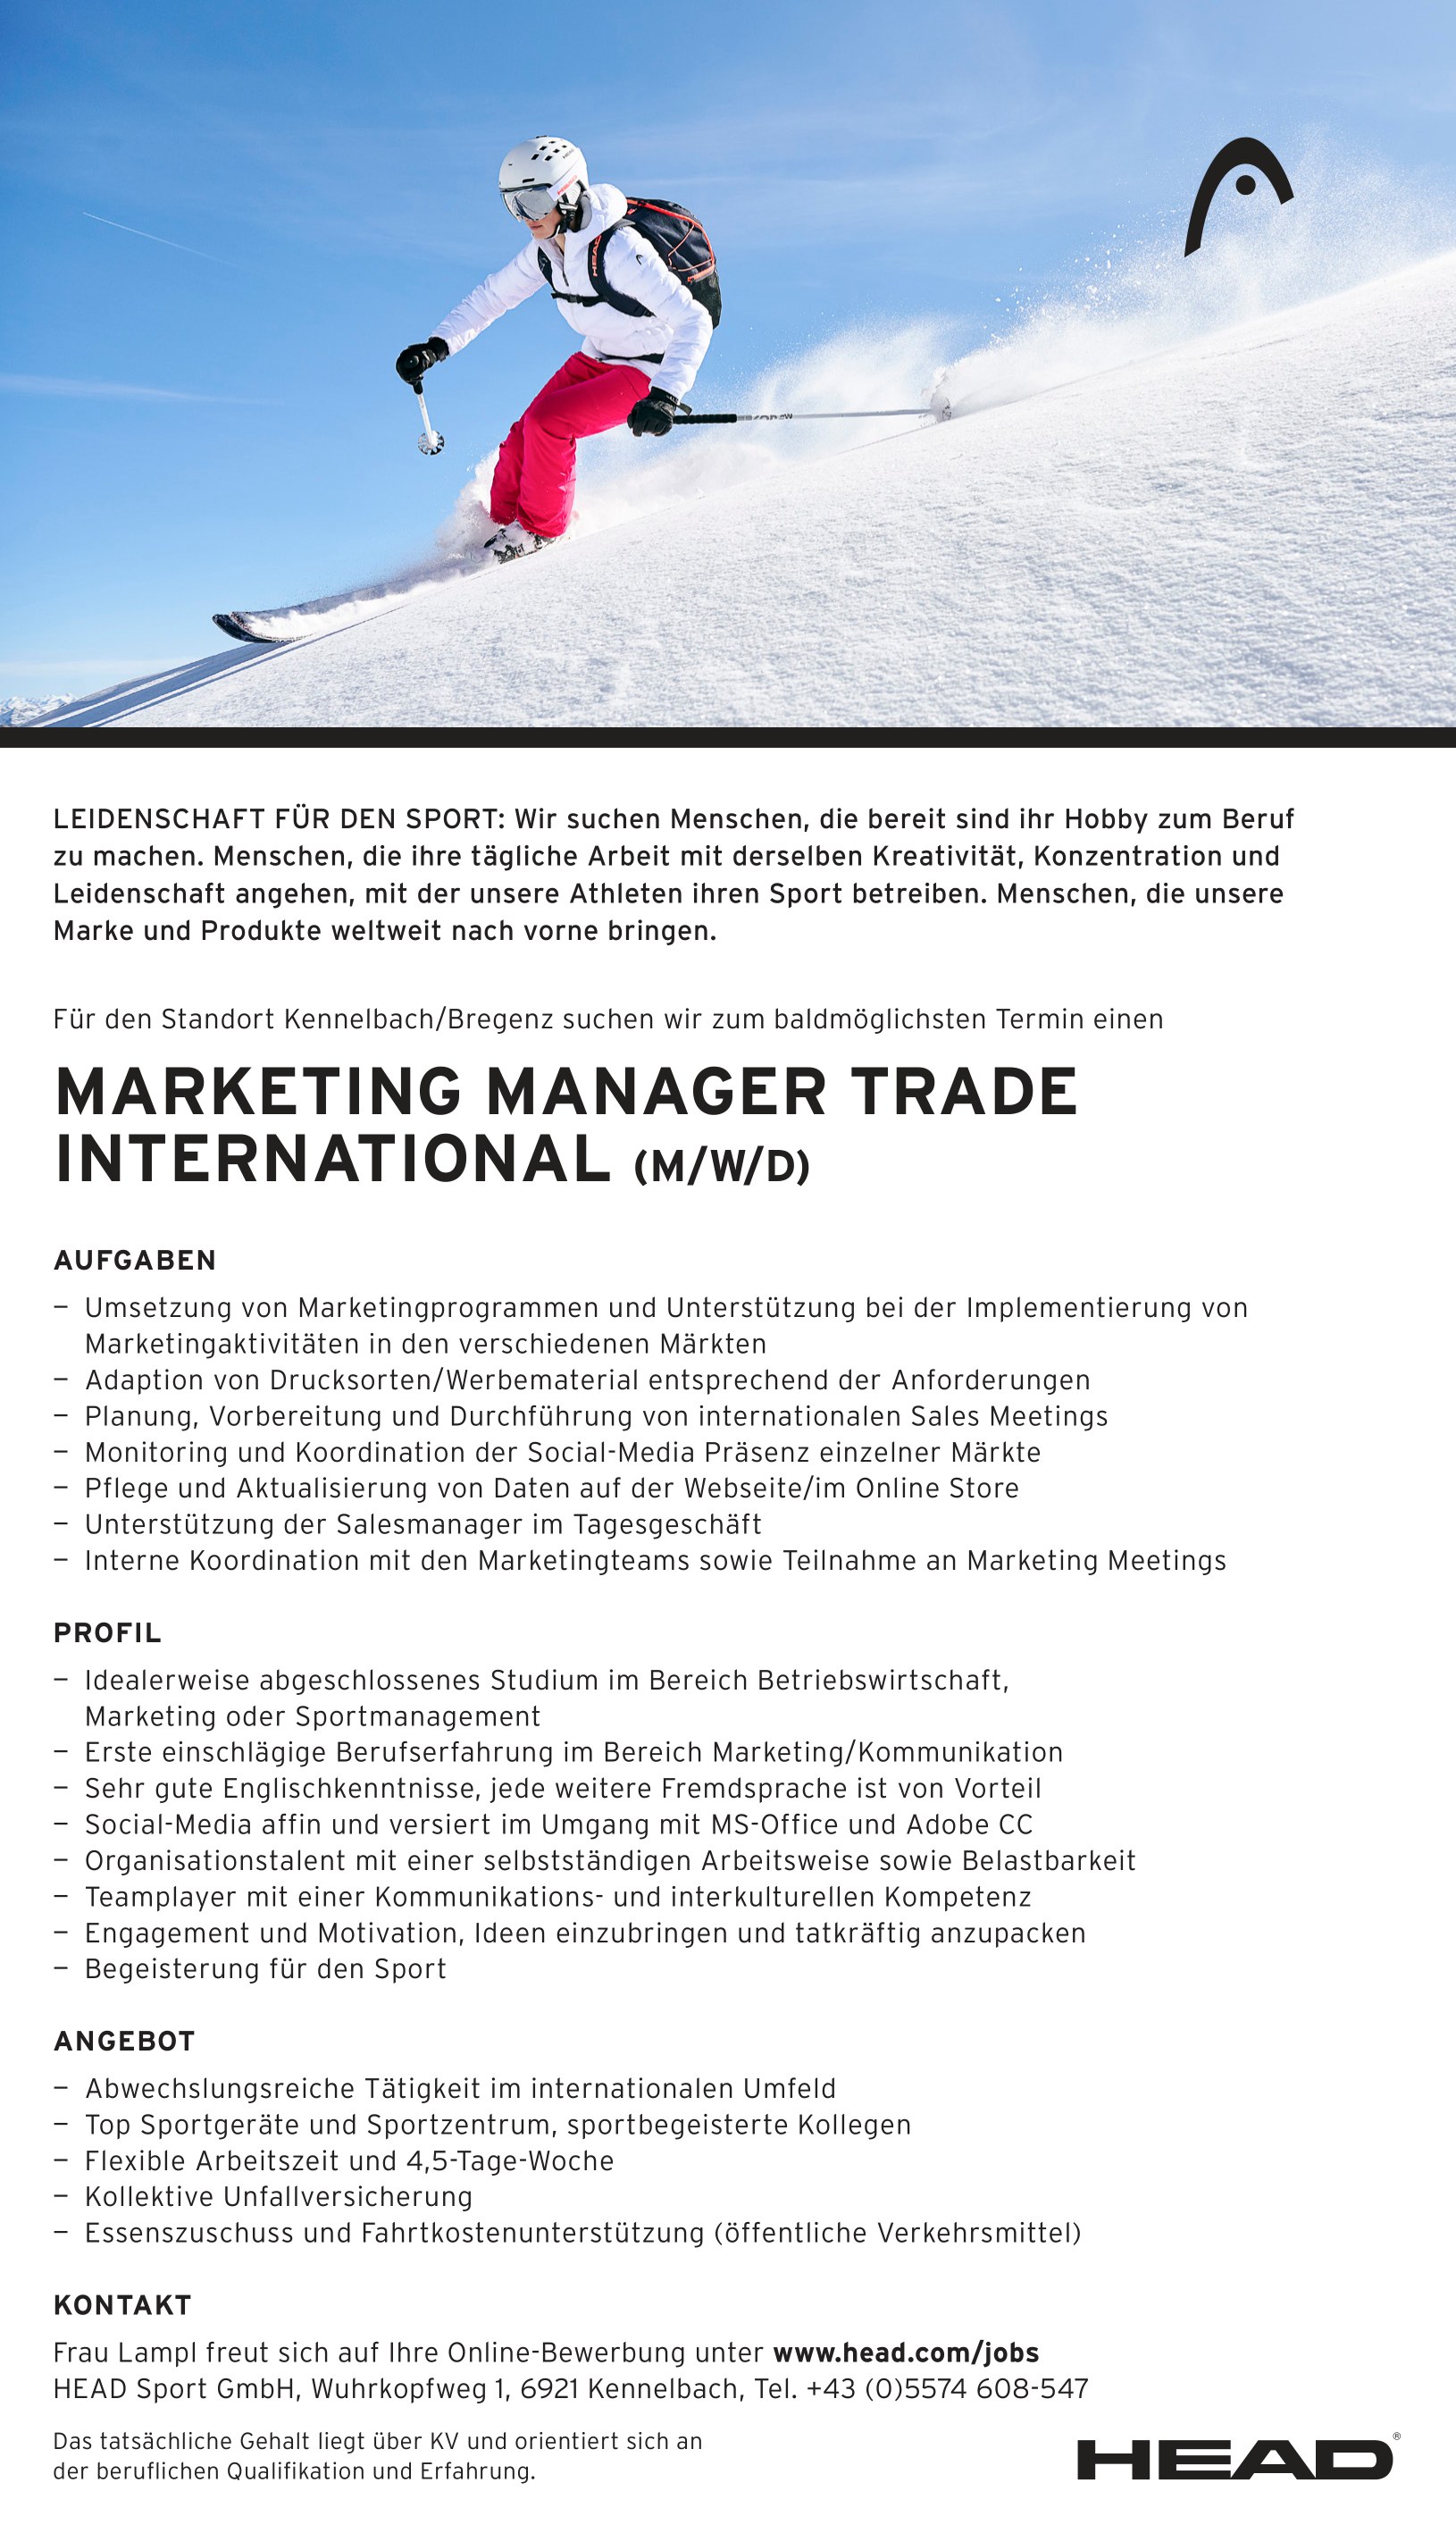 MARKETING MANAGER TRADE INTERNATIONAL (M/W/D)